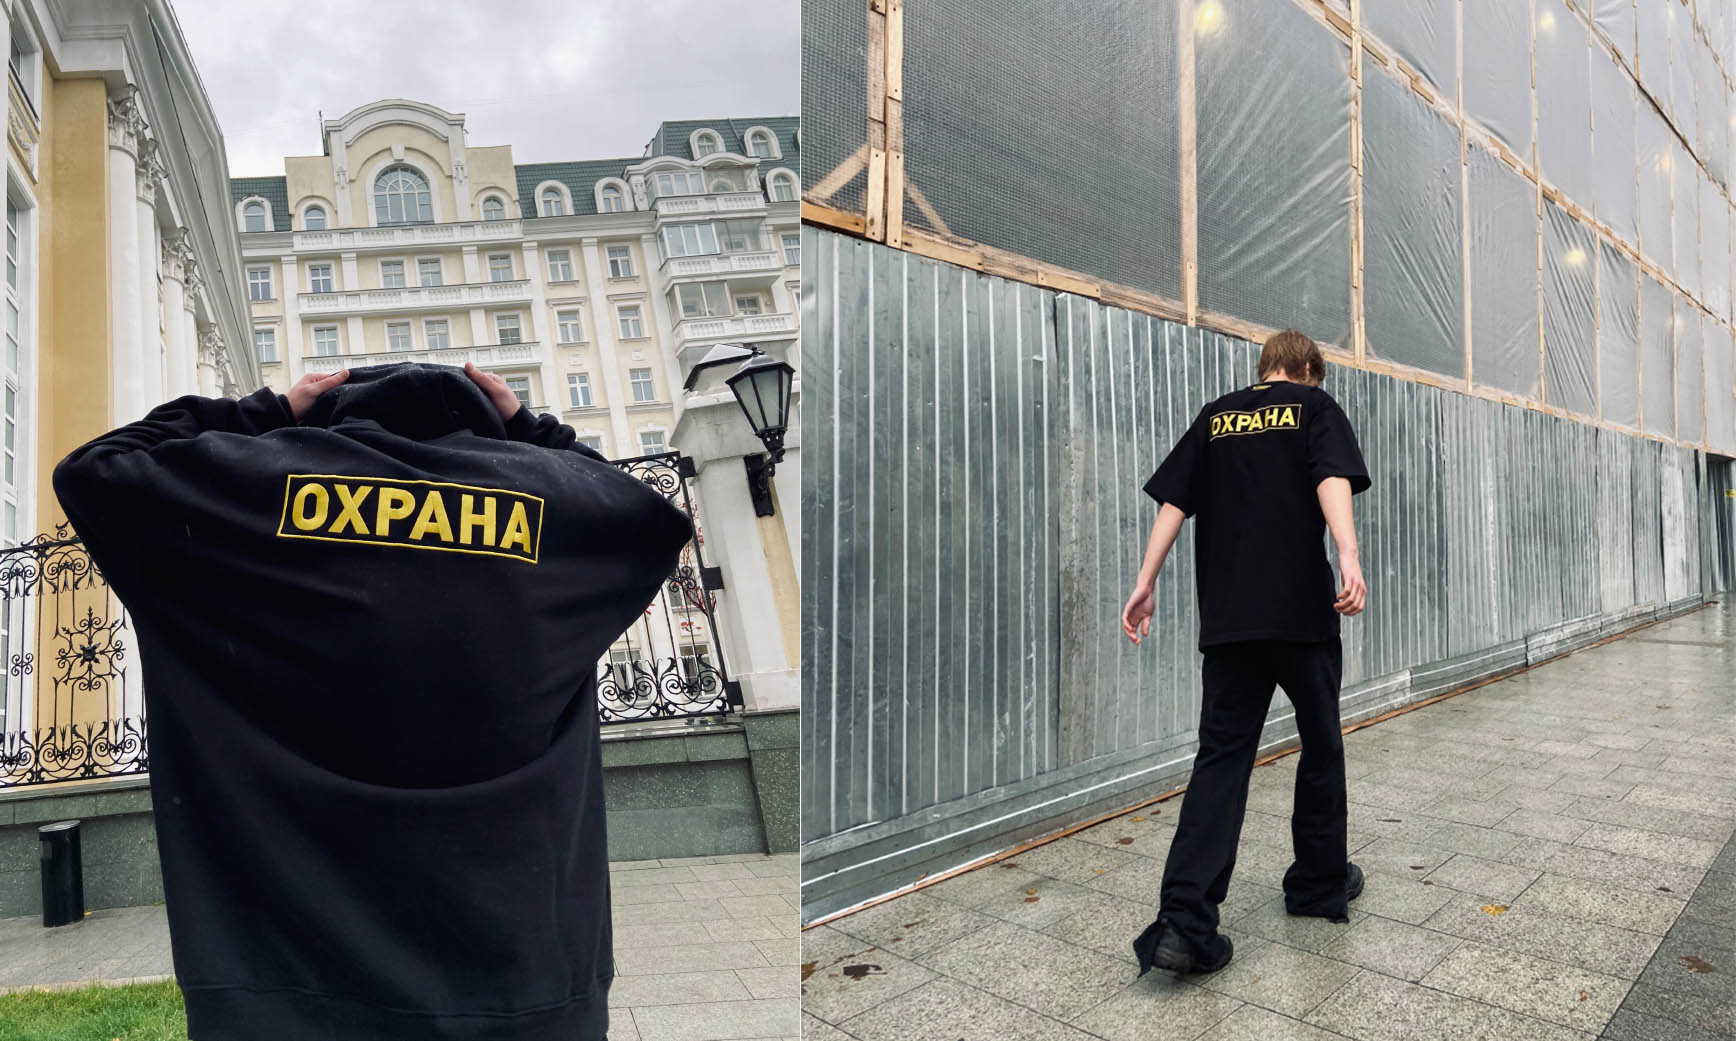 VETEMENTS 与 SV Moscow 推出「OXPAHA」系列